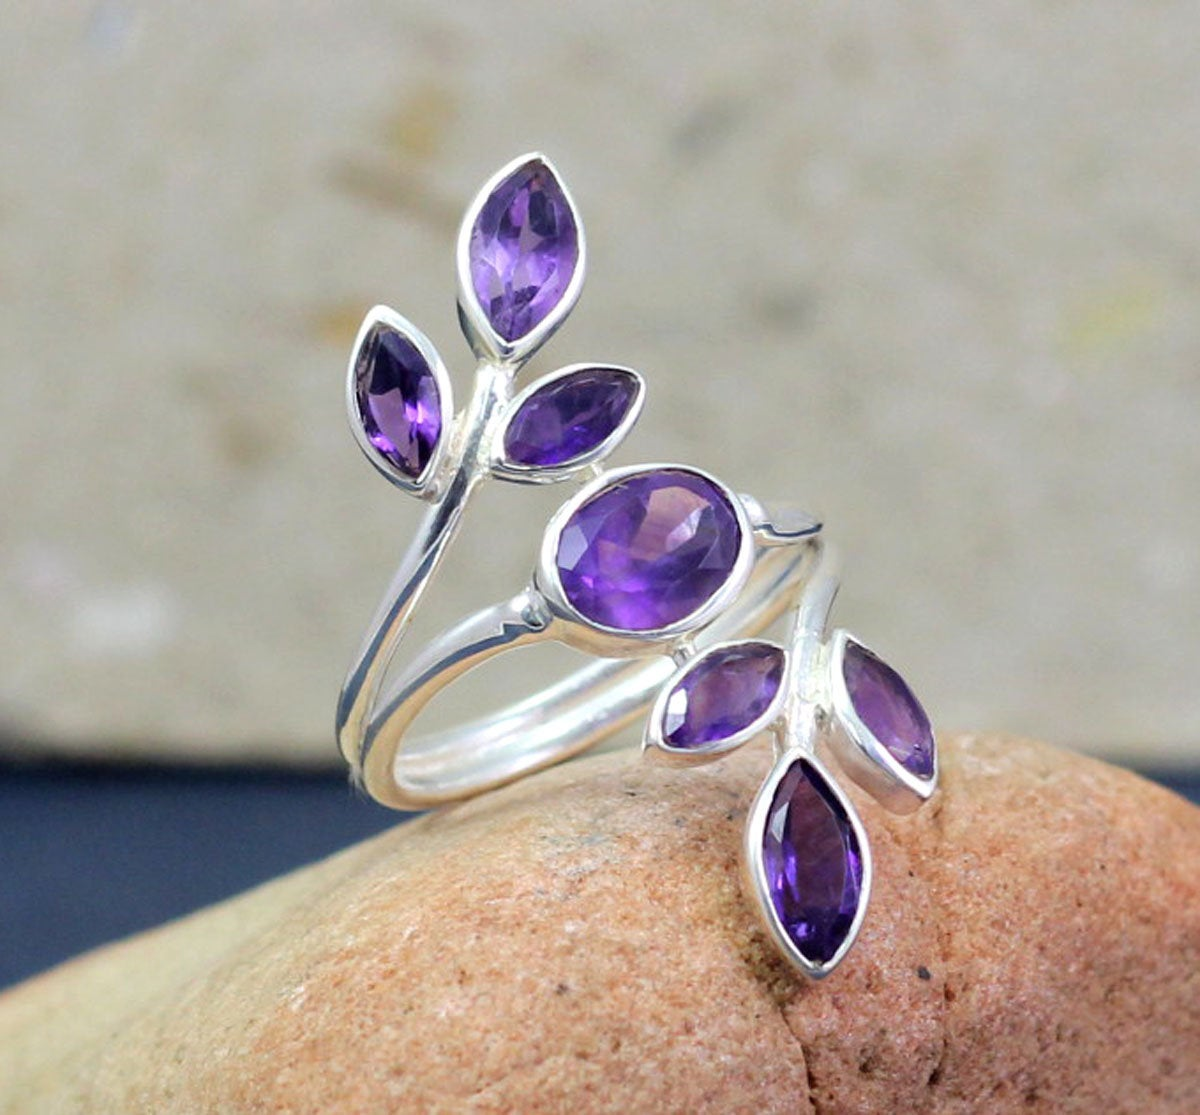 Amethyst Flower Designer Ring,Wedding Gift Ring,Bridal shower Gift,Solid 925 Sterling Silver Handmade Jewelry,Anniversary Gift Ring MR1003